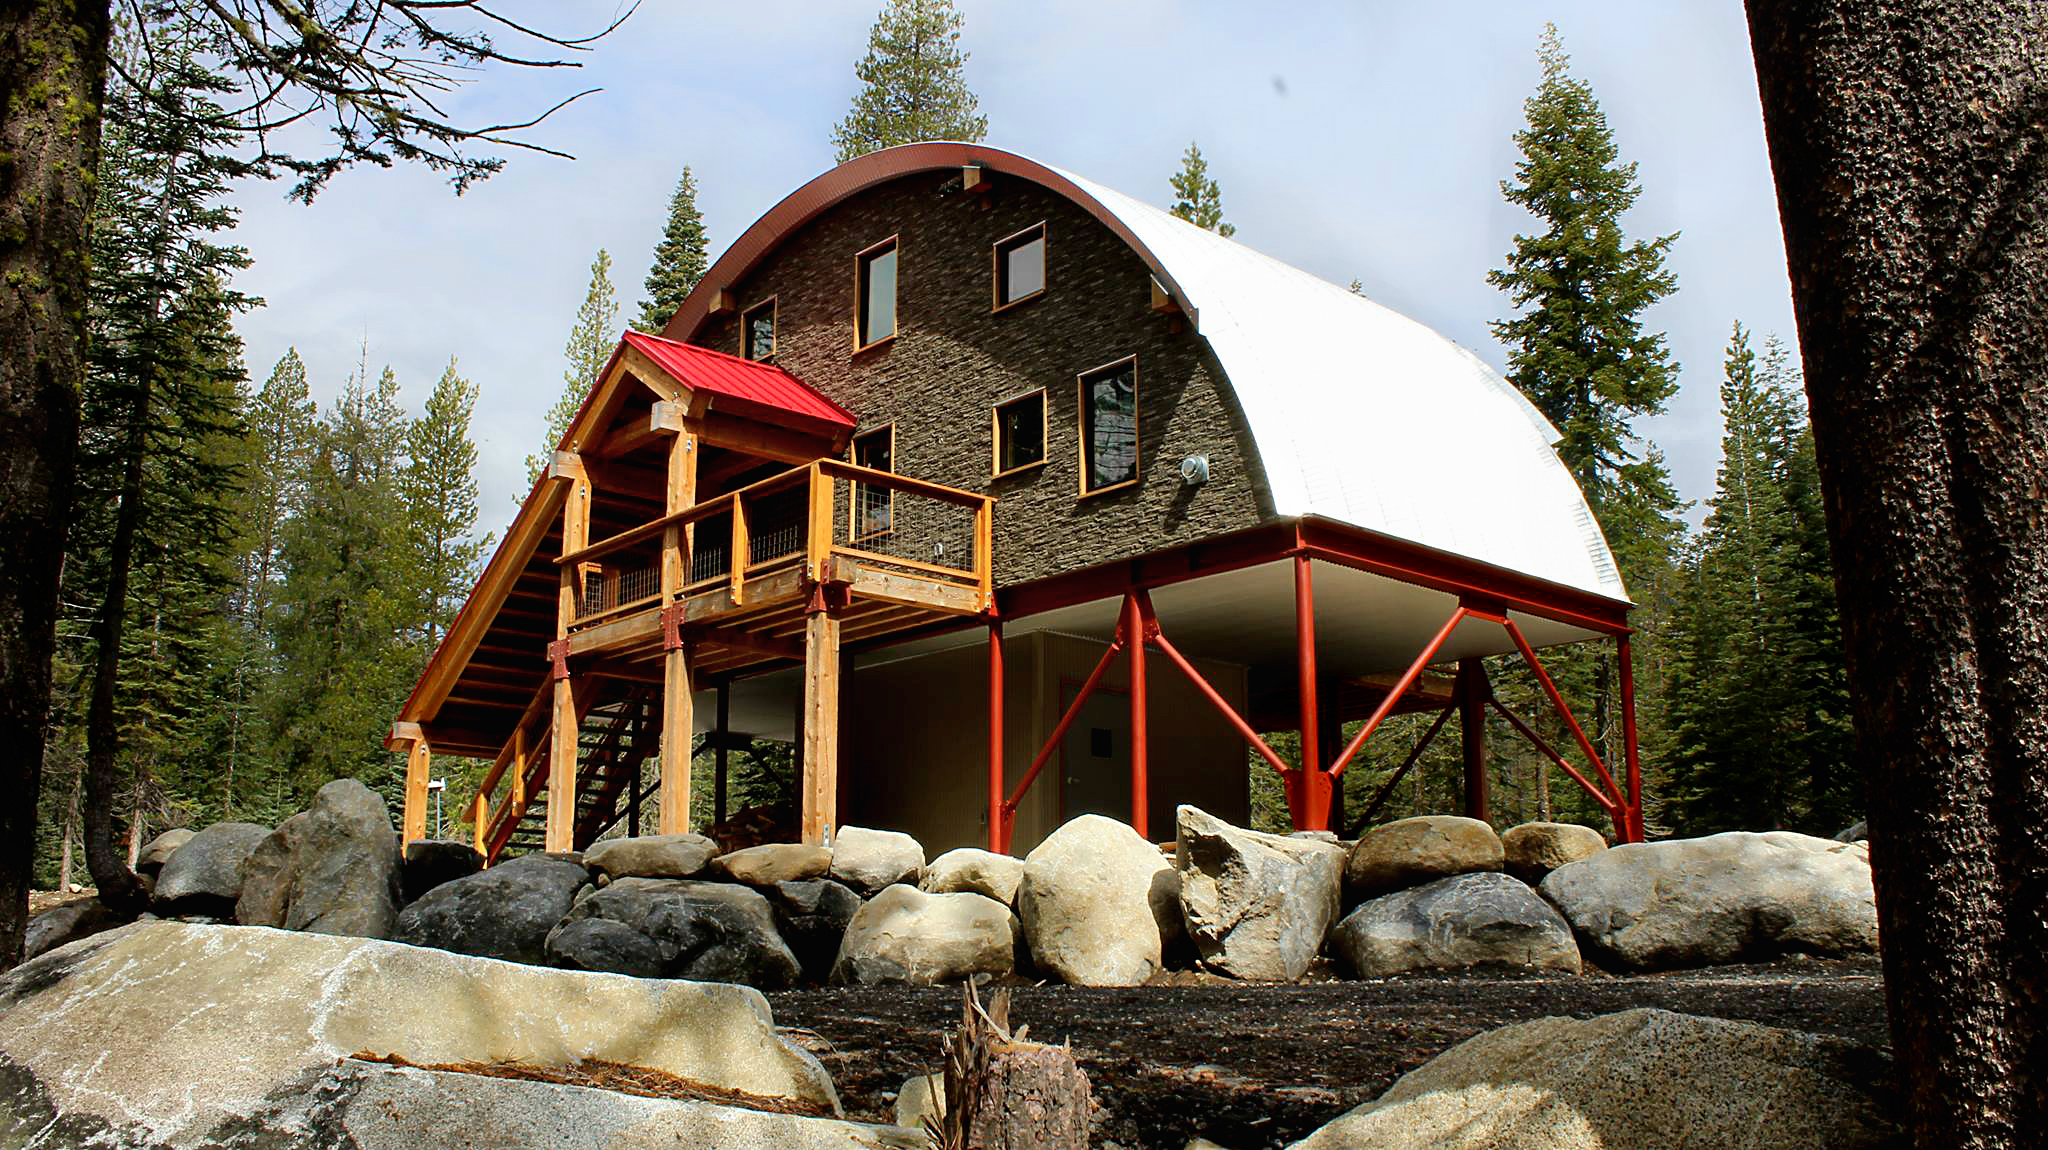 These Quonset Inexpensive Kit Homes Start at Less than $8,000 on african home designs, portable building home designs, storage shed home designs, classic home designs, quonset house designs, garage home designs, lodge home designs, airplane hangar home designs, hut house designs, barn home designs, shop home designs, metal home designs, cabana home designs, yurt home designs, log cabin home designs, underground bunker home designs, art moderne home designs, steel building home designs, steel quonset homes and designs, tent home designs,